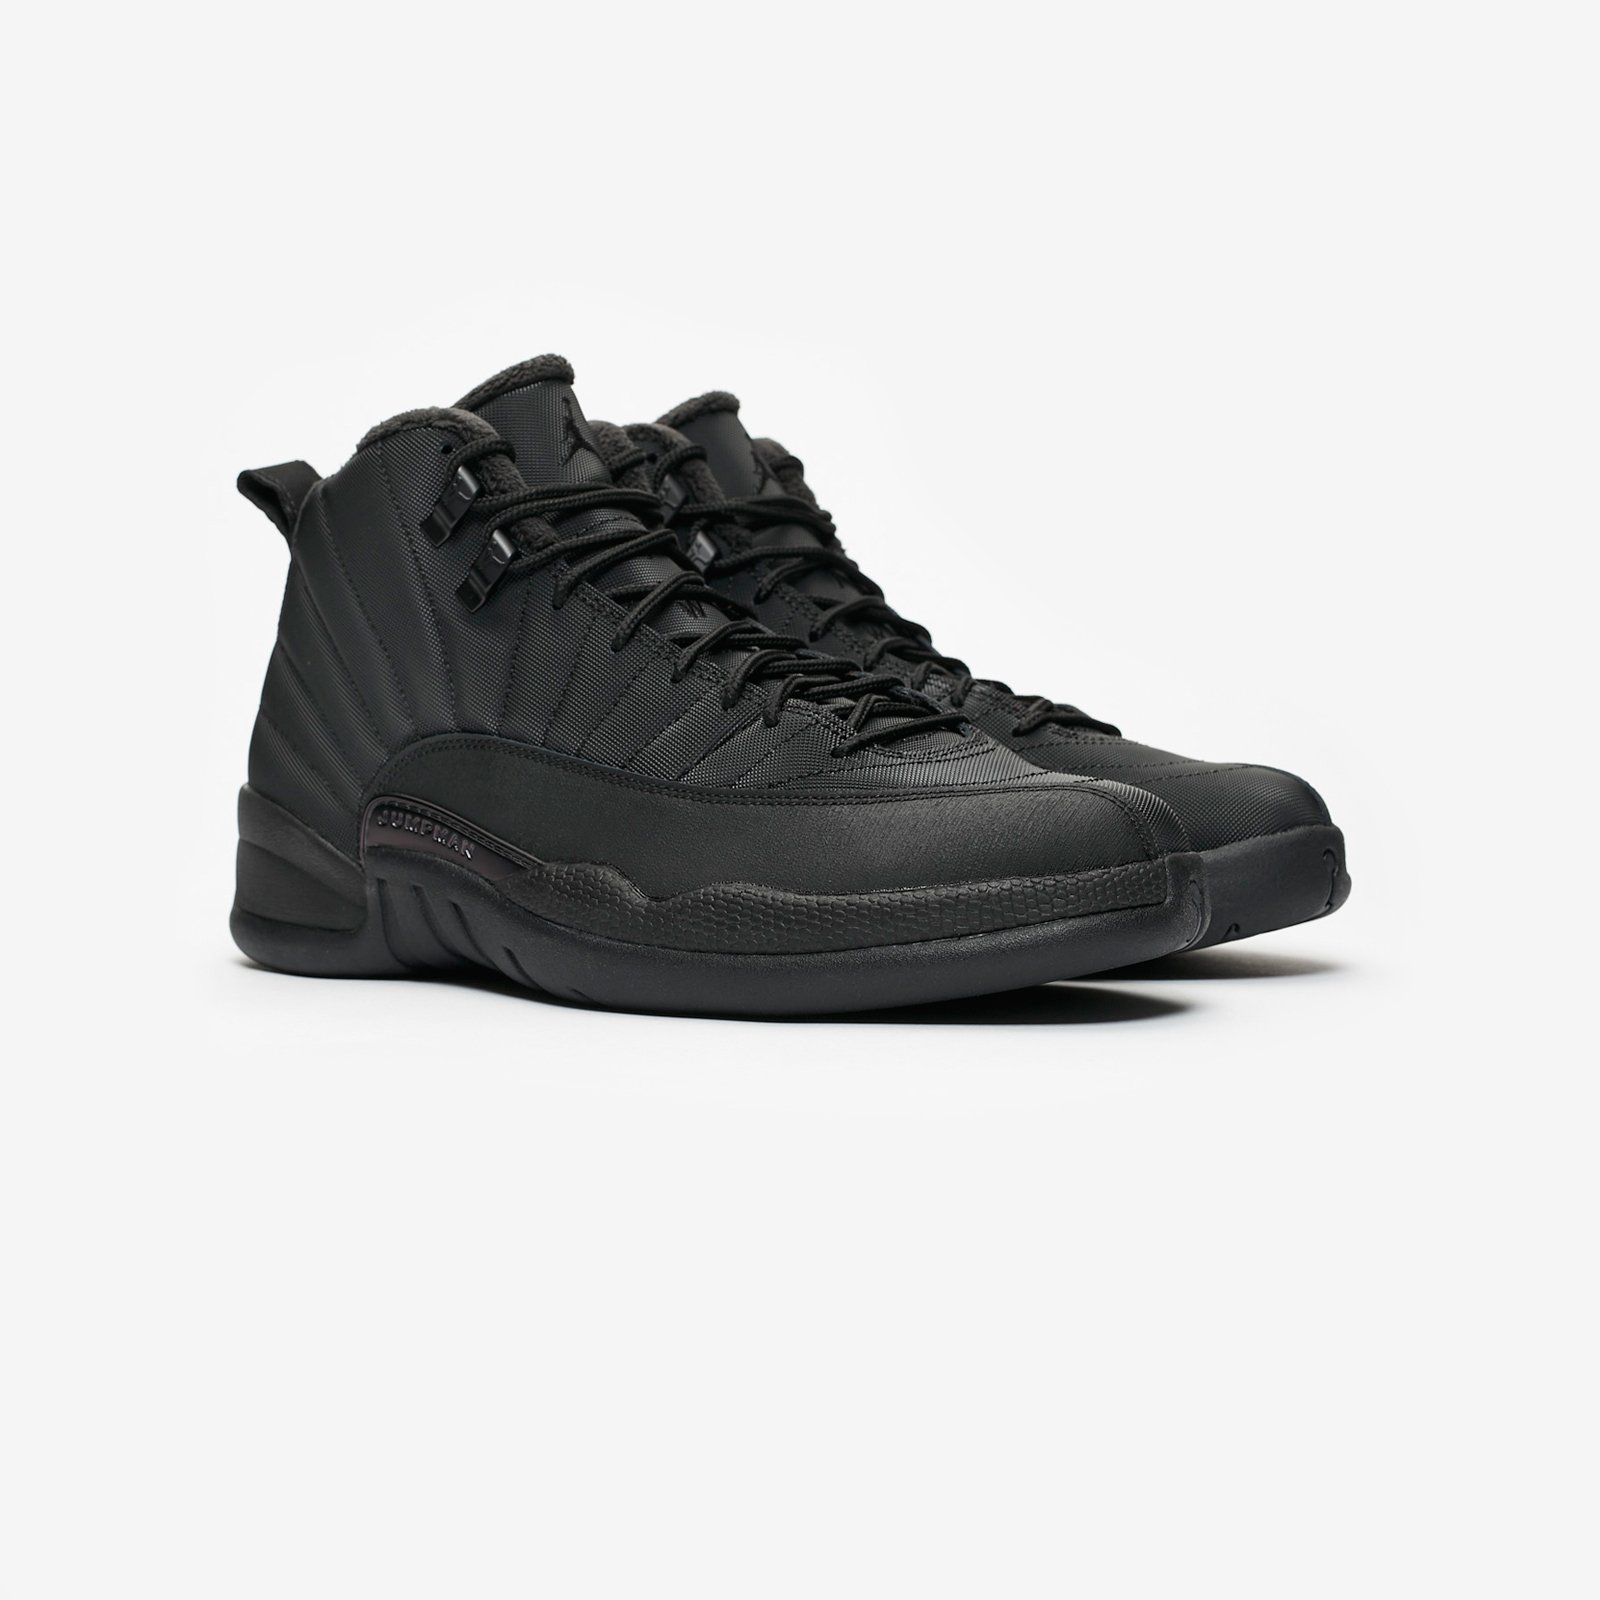 45cc23b347a6 Jordan Brand Air Jordan 12 Retro Winter - Bq6851-001 ...